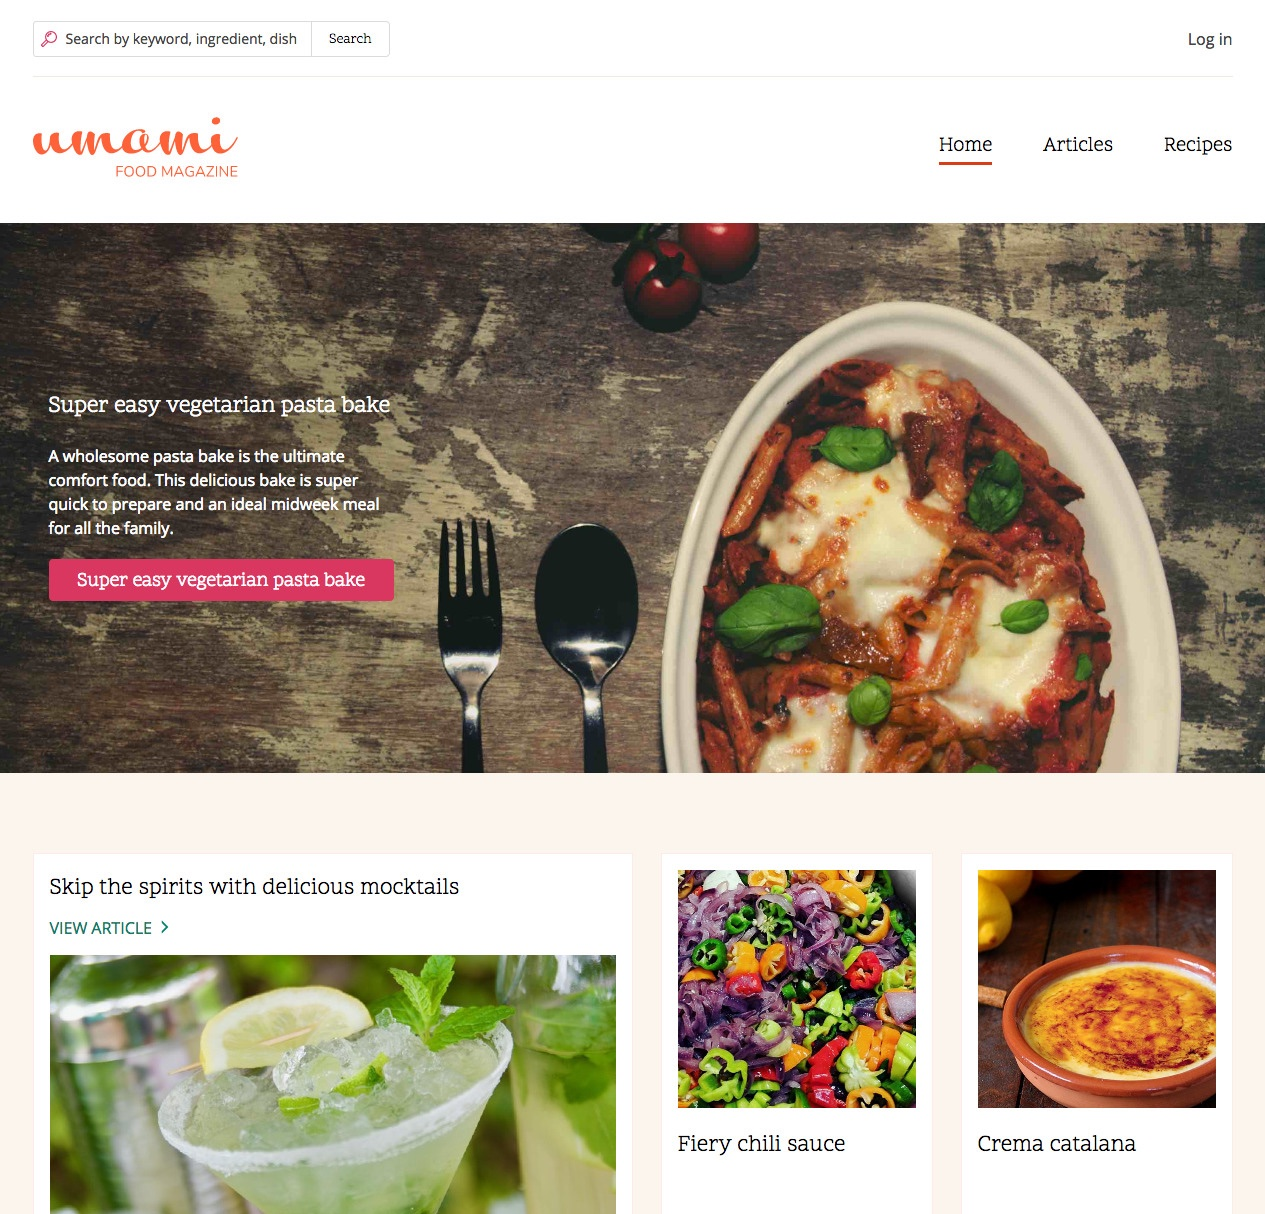 Website of Umami food magazine with images of food on a plate and spoons